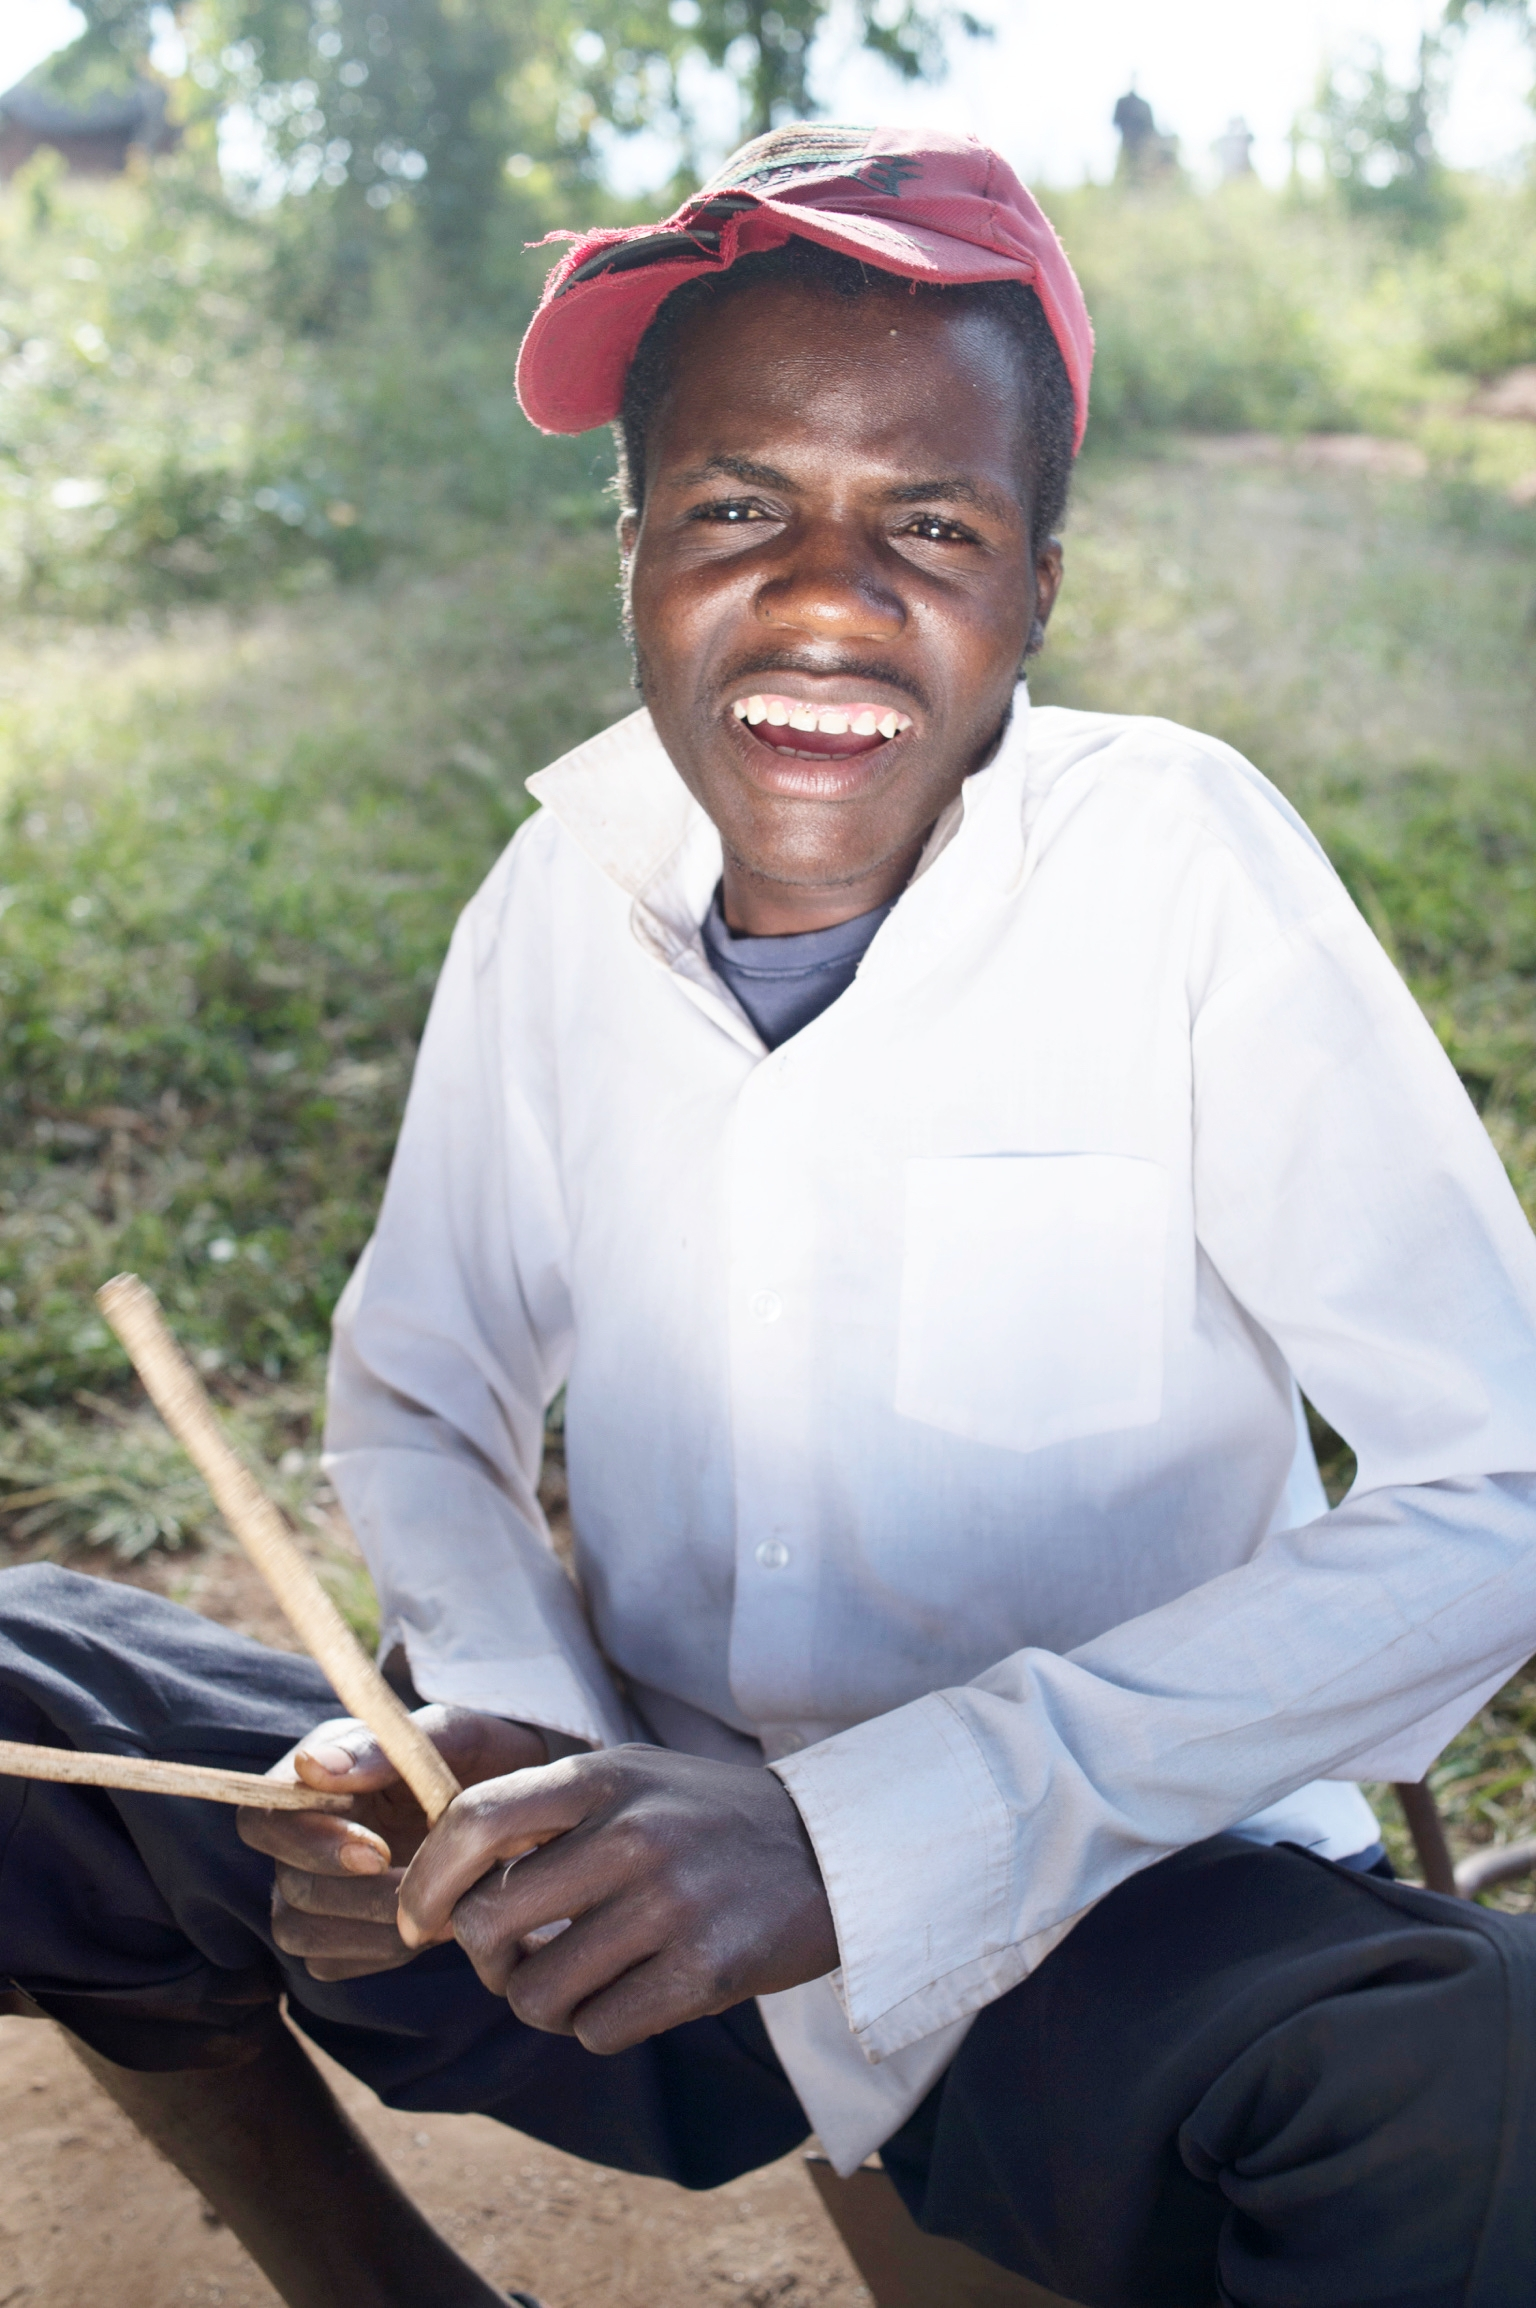 Edwin is disabled and lives with his disabled mother - he cannot walk, but has a talent for playing the drums; the centre visits Edwin to support him with psycho-social skills, social interactions and feeding support